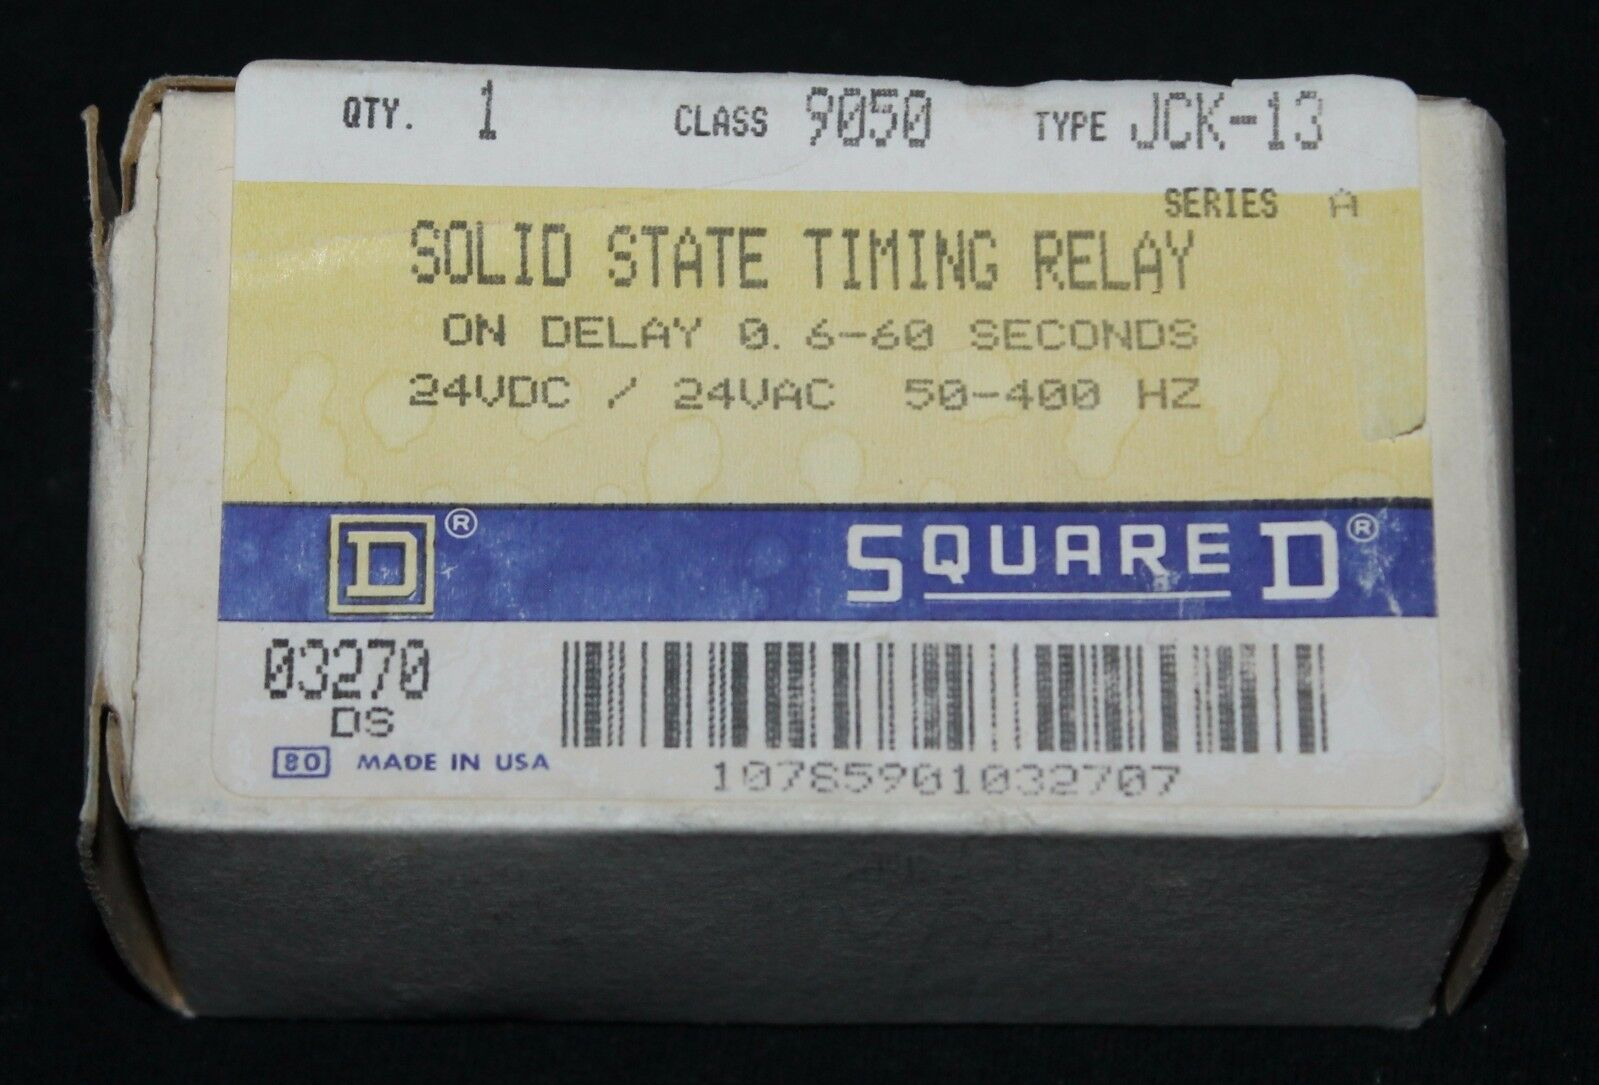 Square D 9050 Jck 13 Solid State Timing Relay 6 60 Second 24vac Spdt 5v Norton Secured Powered By Verisign